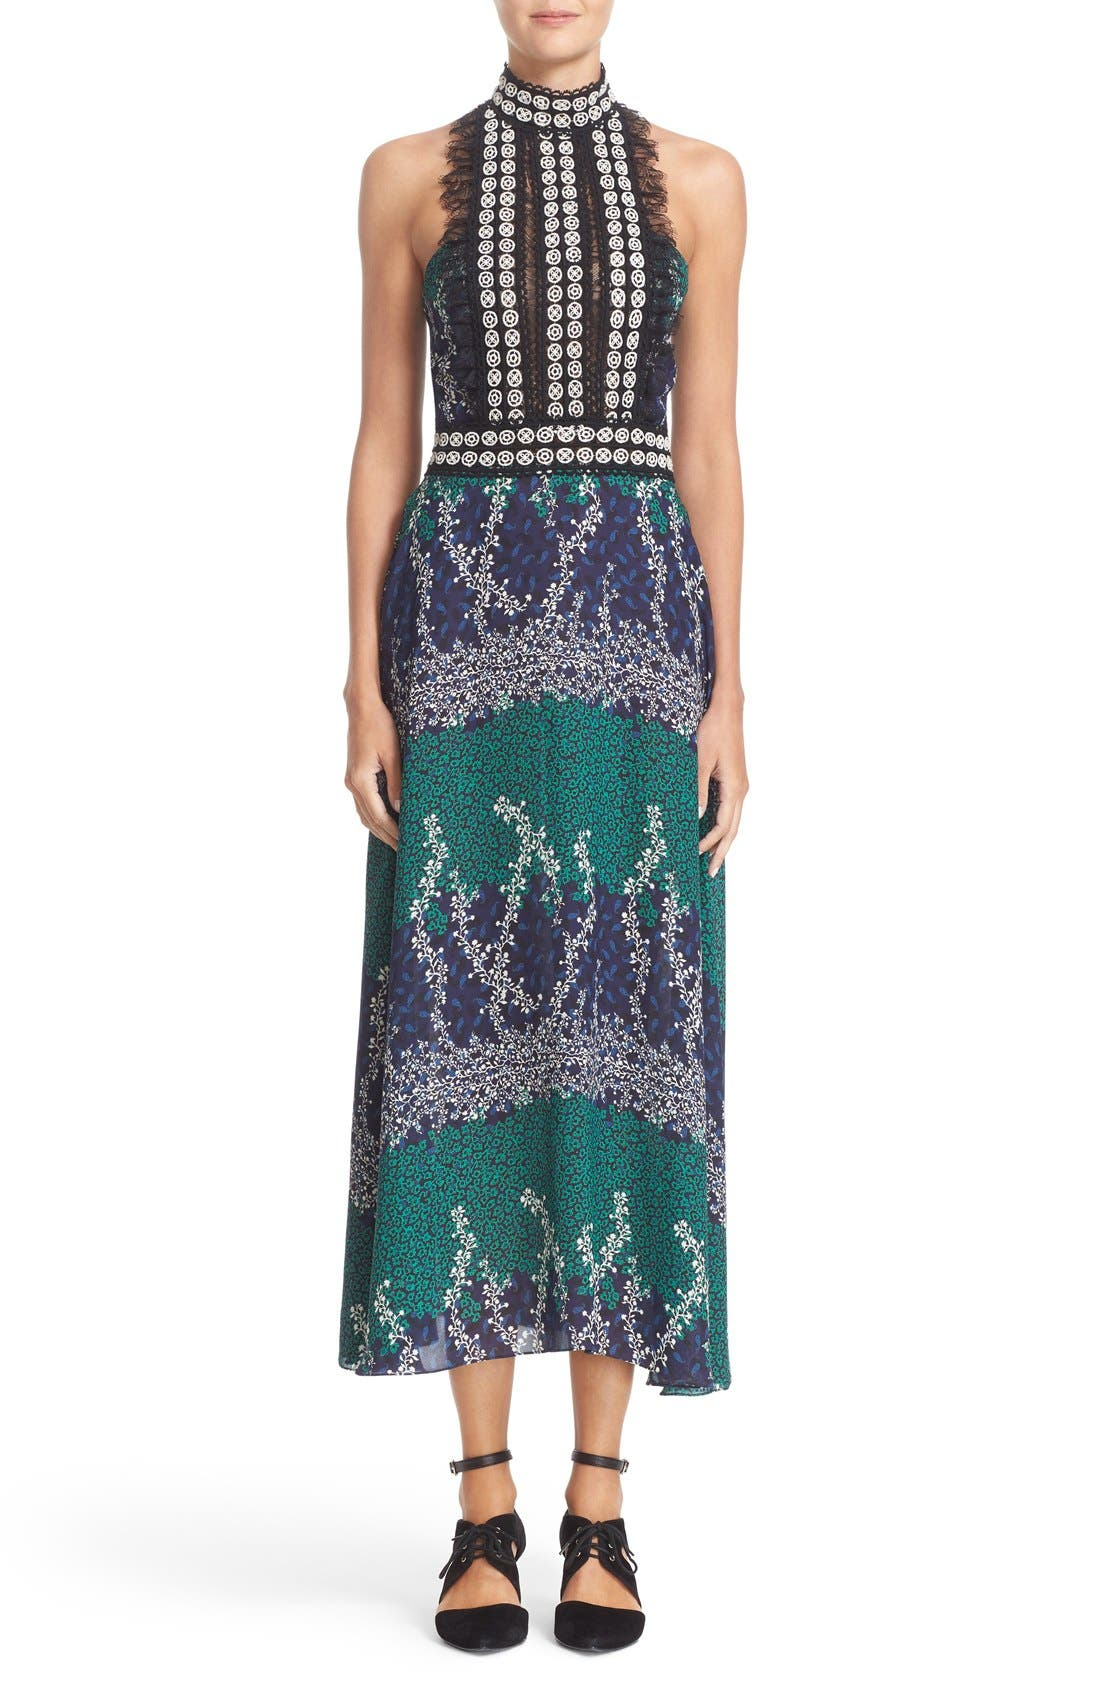 Alternate Image 1 Selected - Yigal Azrouël Lace Trim Ivy & Paisley Print Maxi Dress